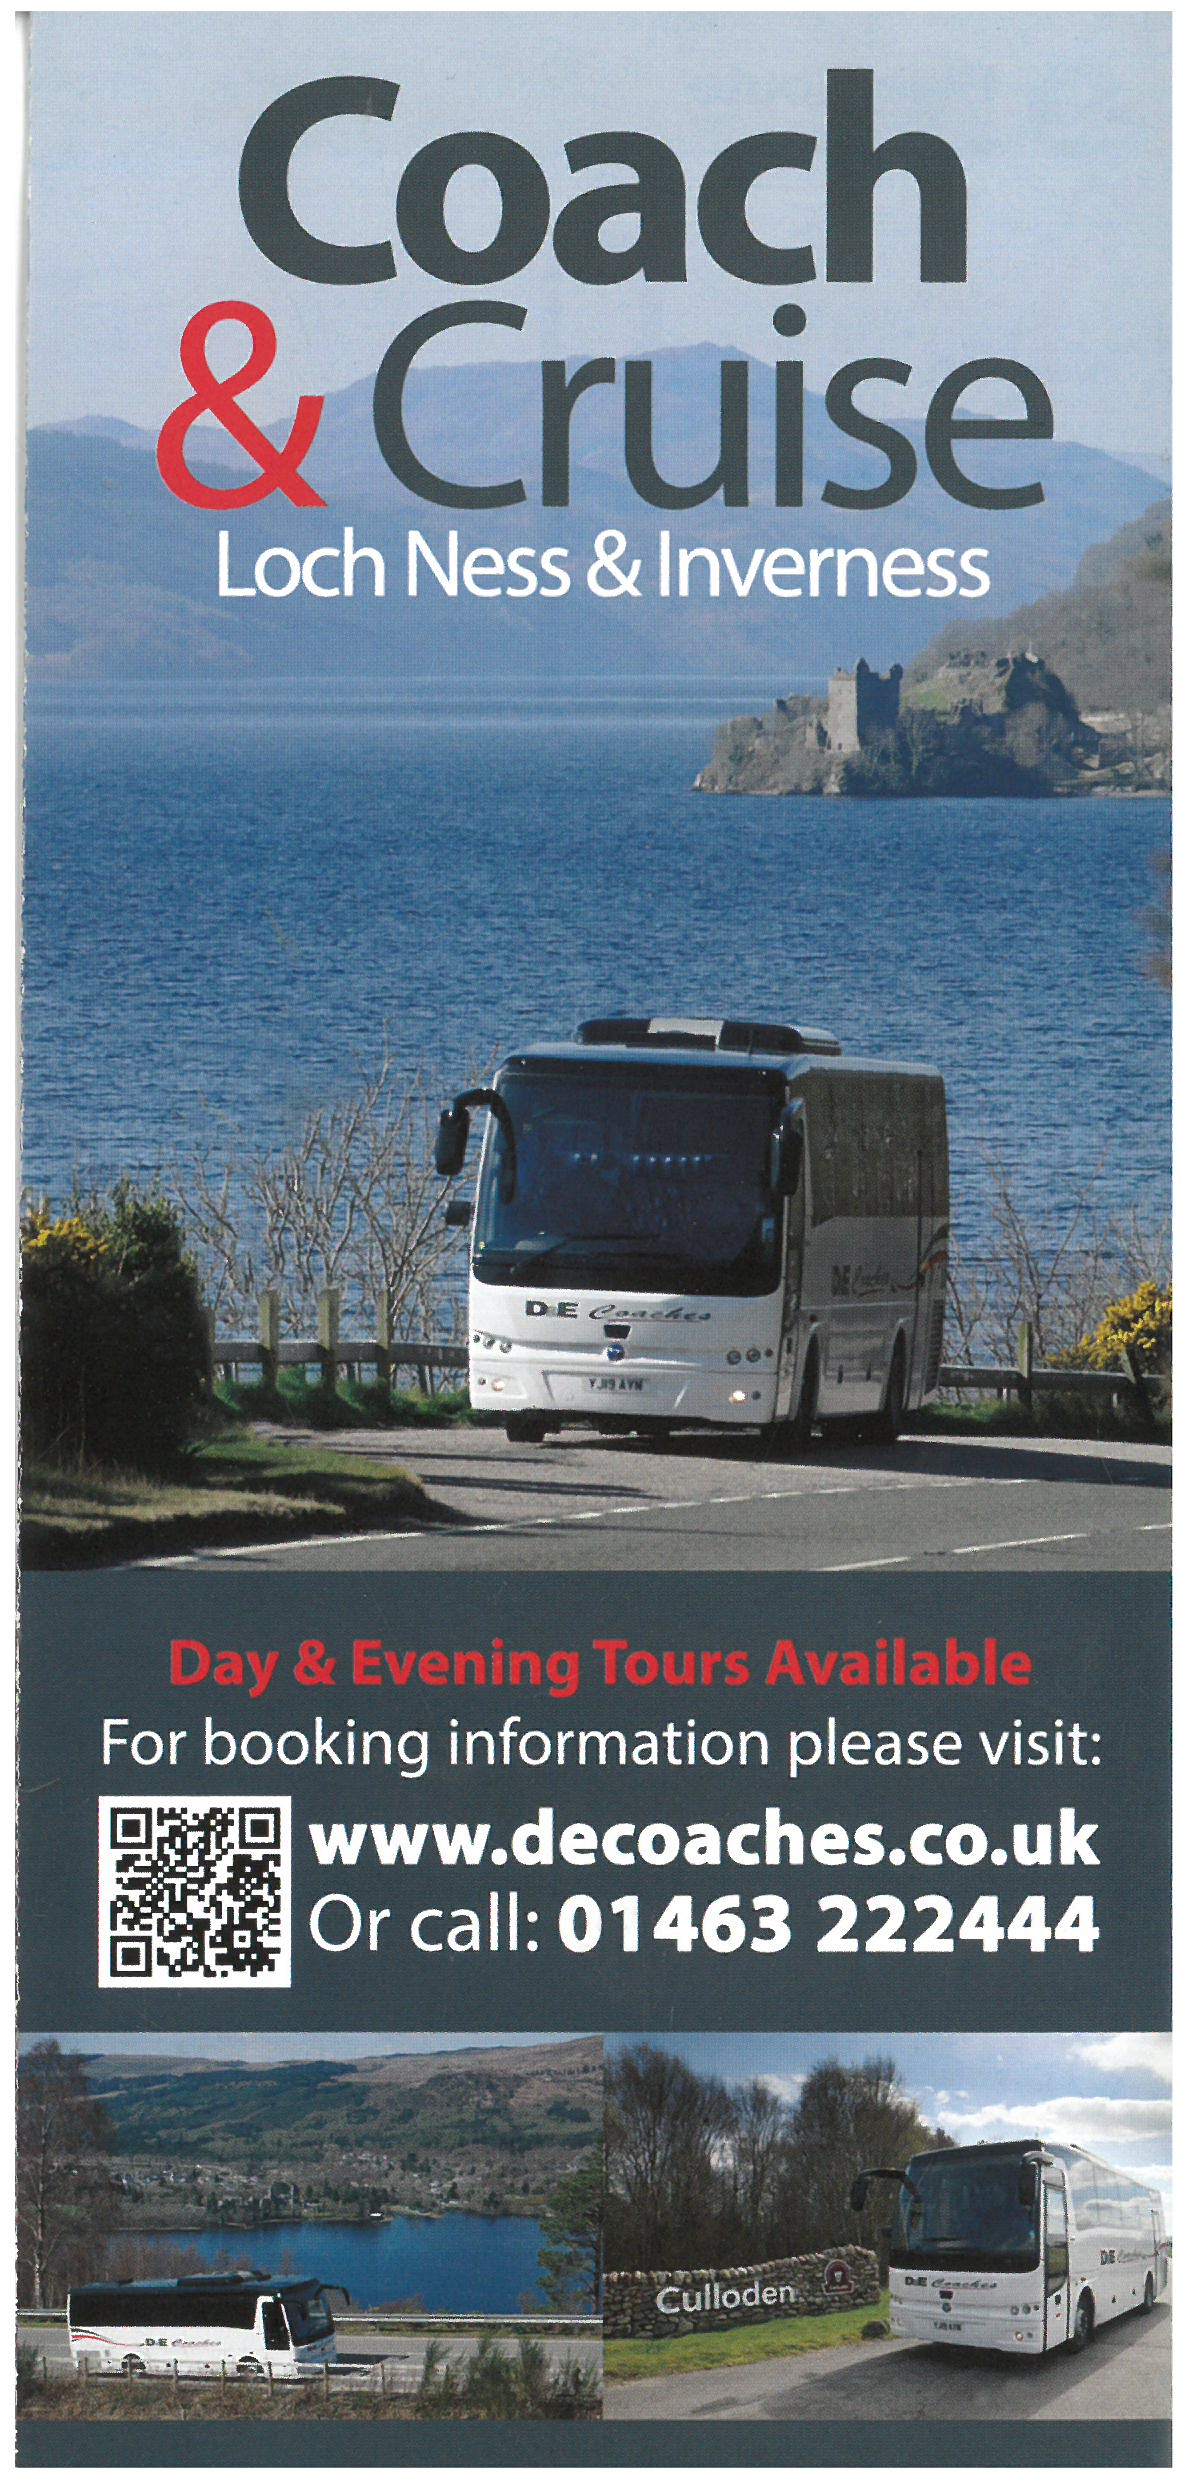 Coach & Cruise Tours of Loch Ness & Inverness